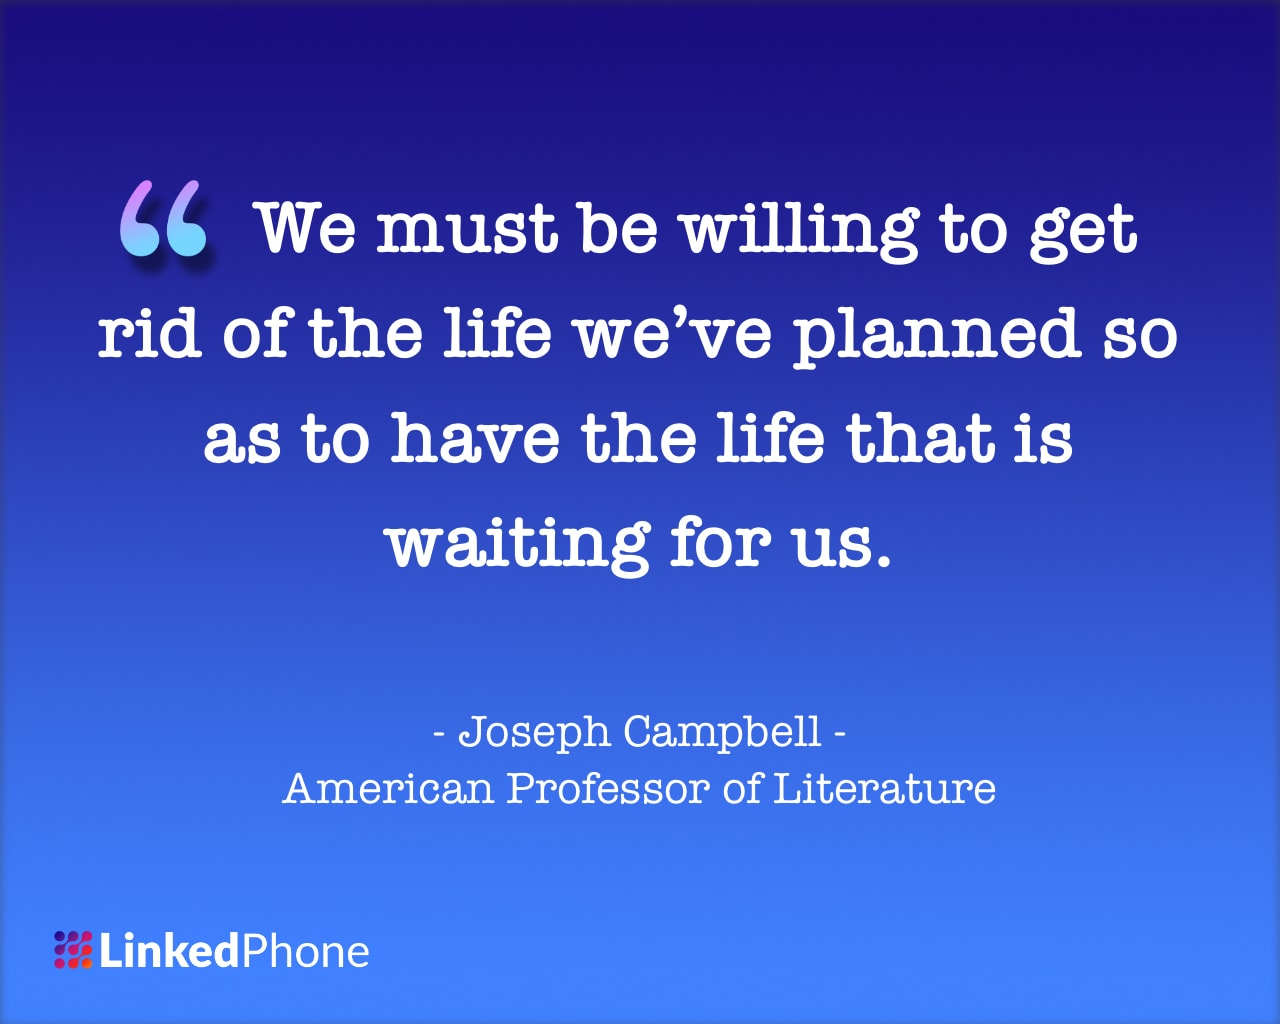 Joseph Campbell - Motivational Inspirational Quotes and Sayings